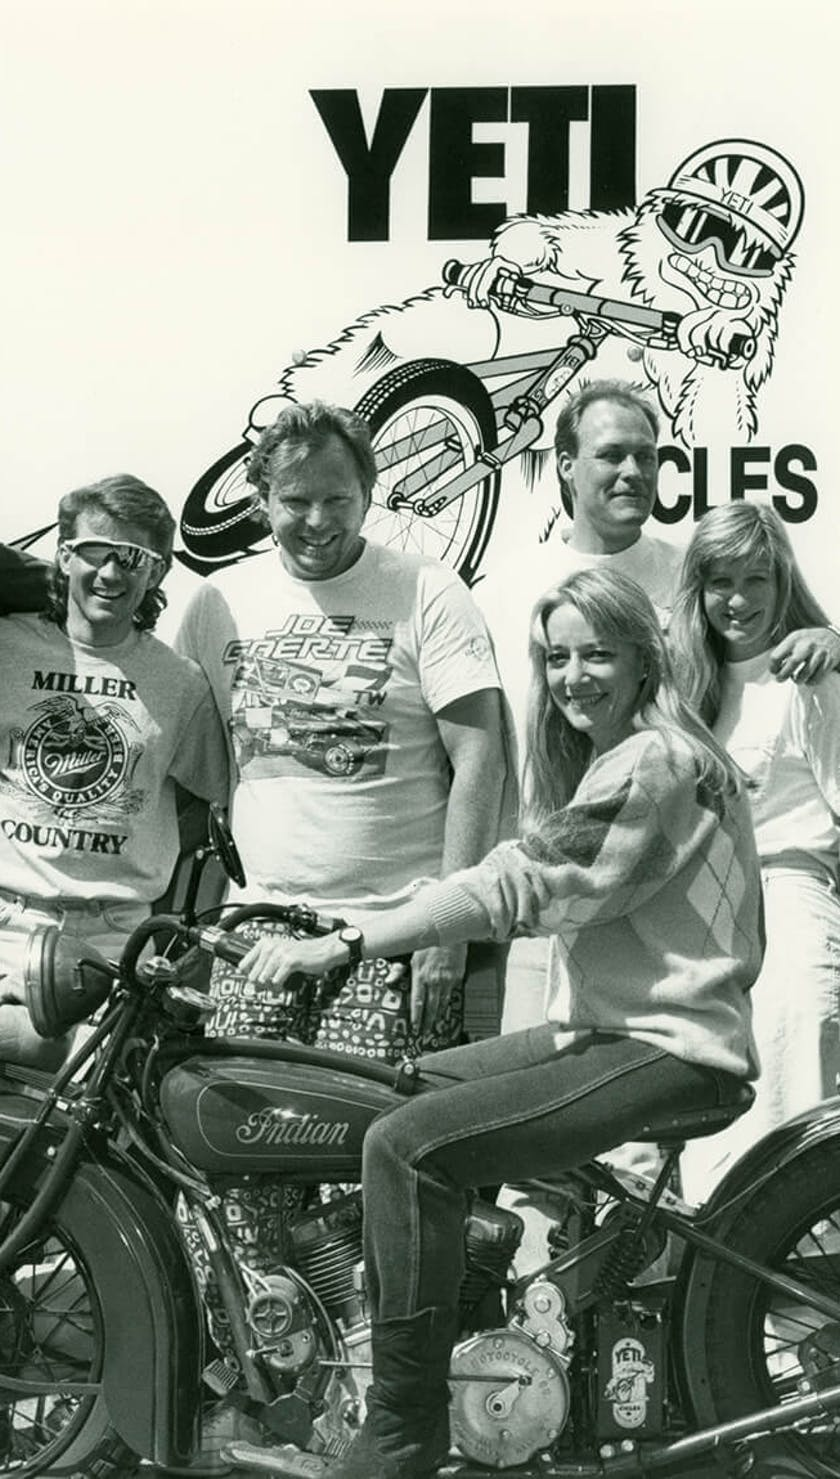 Yeti Crew back in the day.